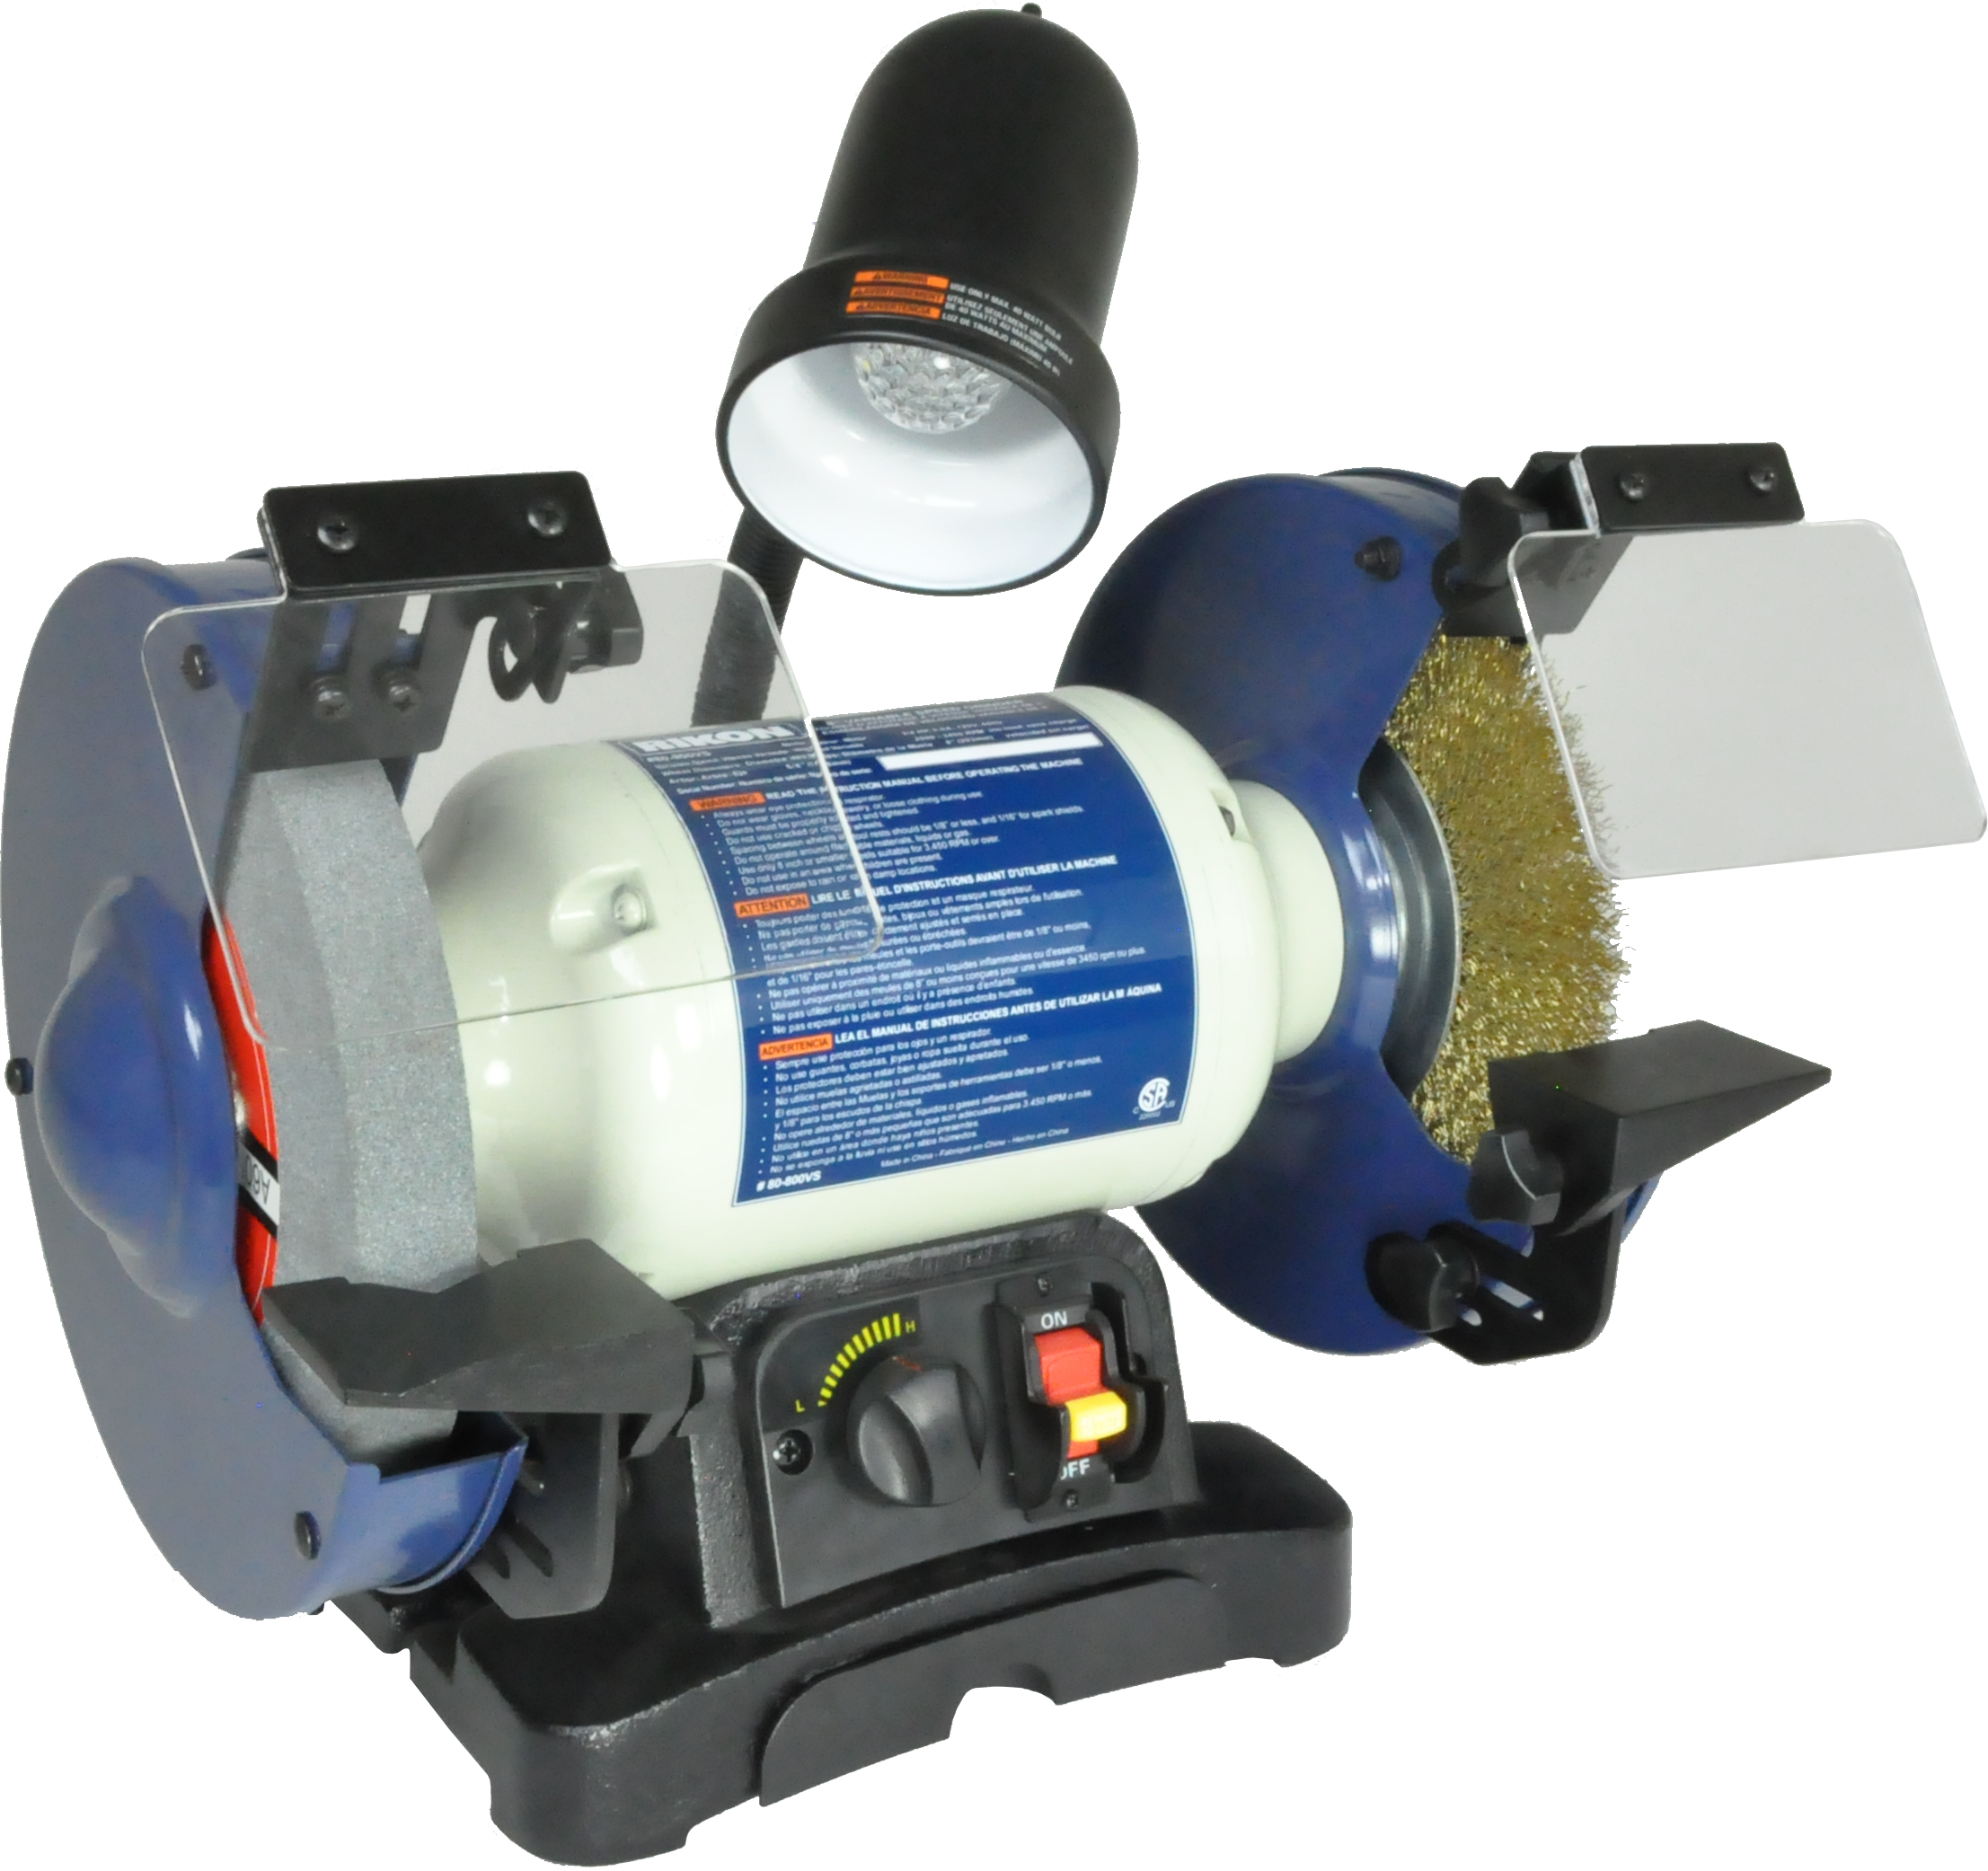 80 800vs 8 Inch Variable Speed Bench Grinder